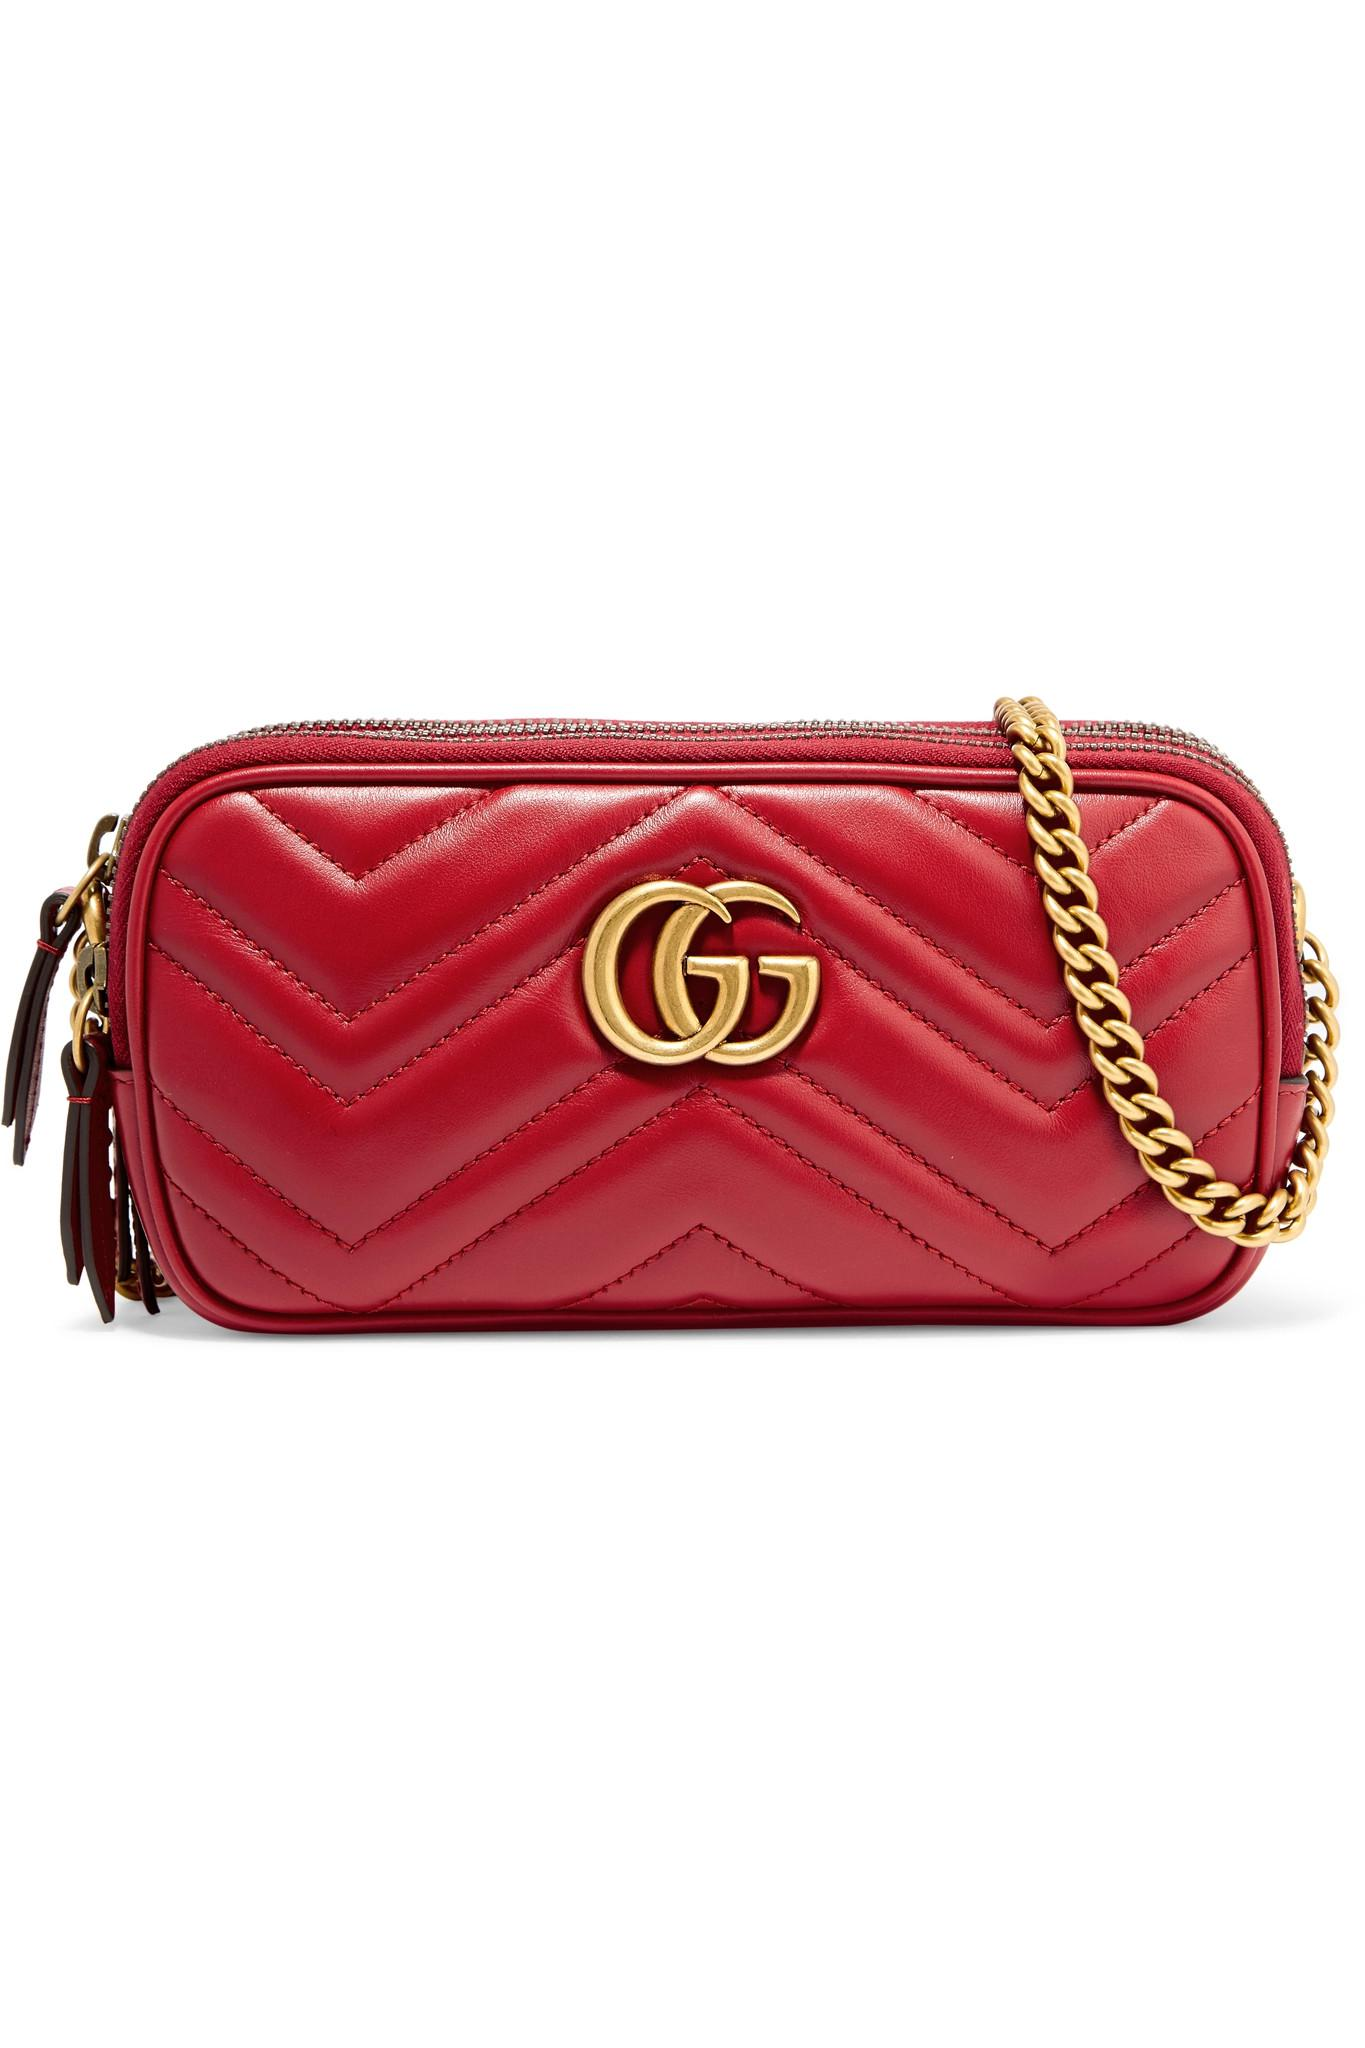 f0799eb4f14e Lyst - Gucci Gg Marmont Mini Quilted Leather Shoulder Bag in Red